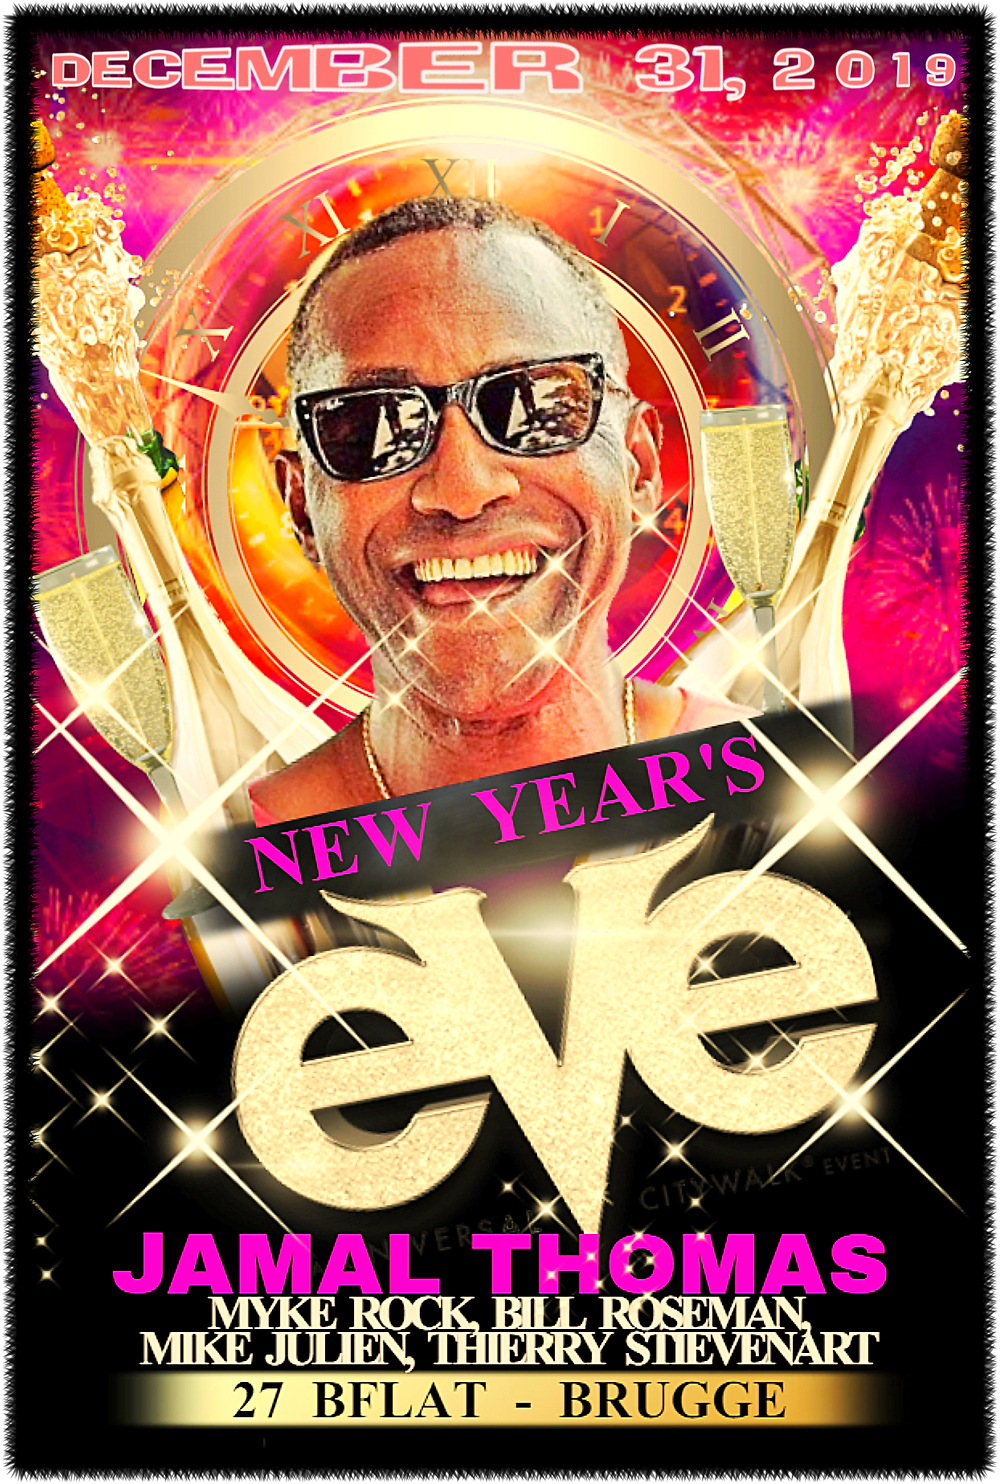 Jamal Thomas New Year's Eve with Myke Rock & More at 27Bflat in in Brugge!